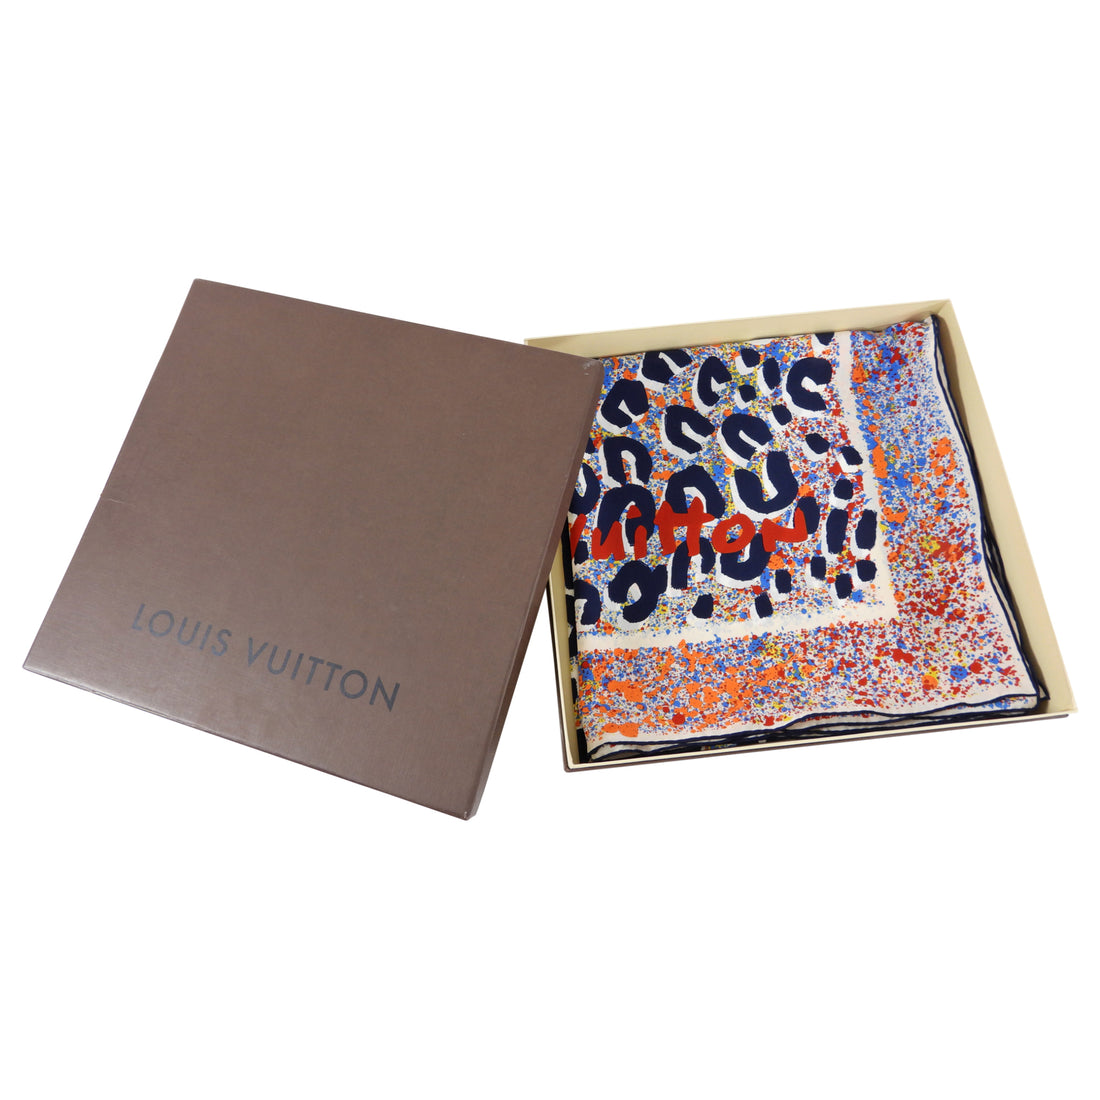 Louis Vuitton Limited Edition Stephen Sprouse Silk Shawl Scarf